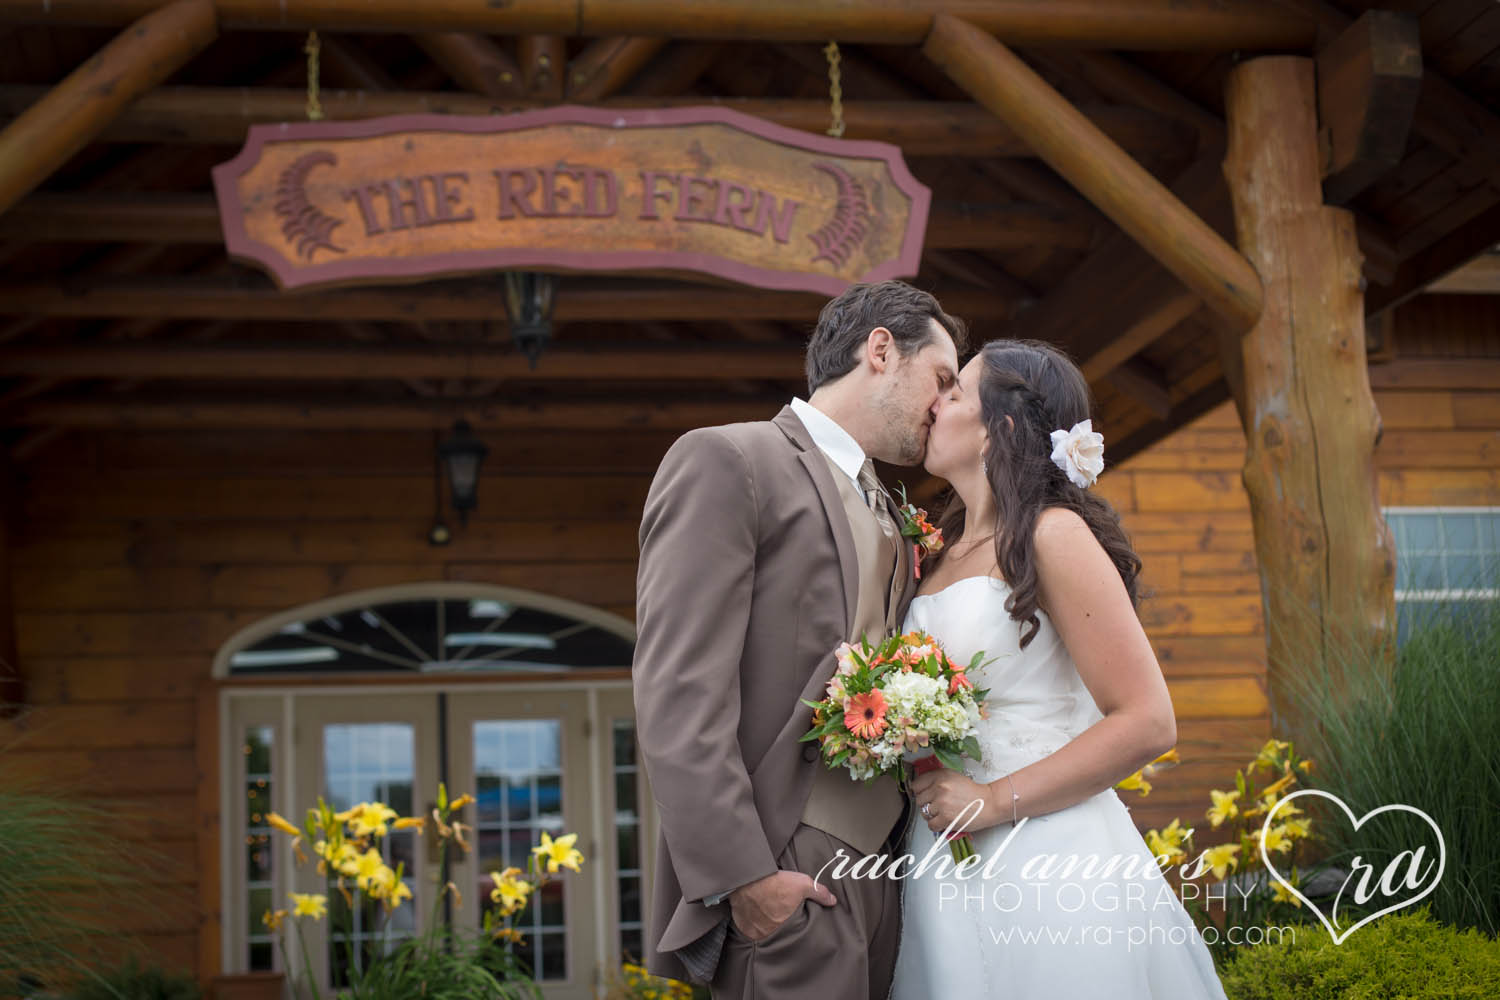 TCR-RED FERN WEDDING KERSEY PA-19.jpg